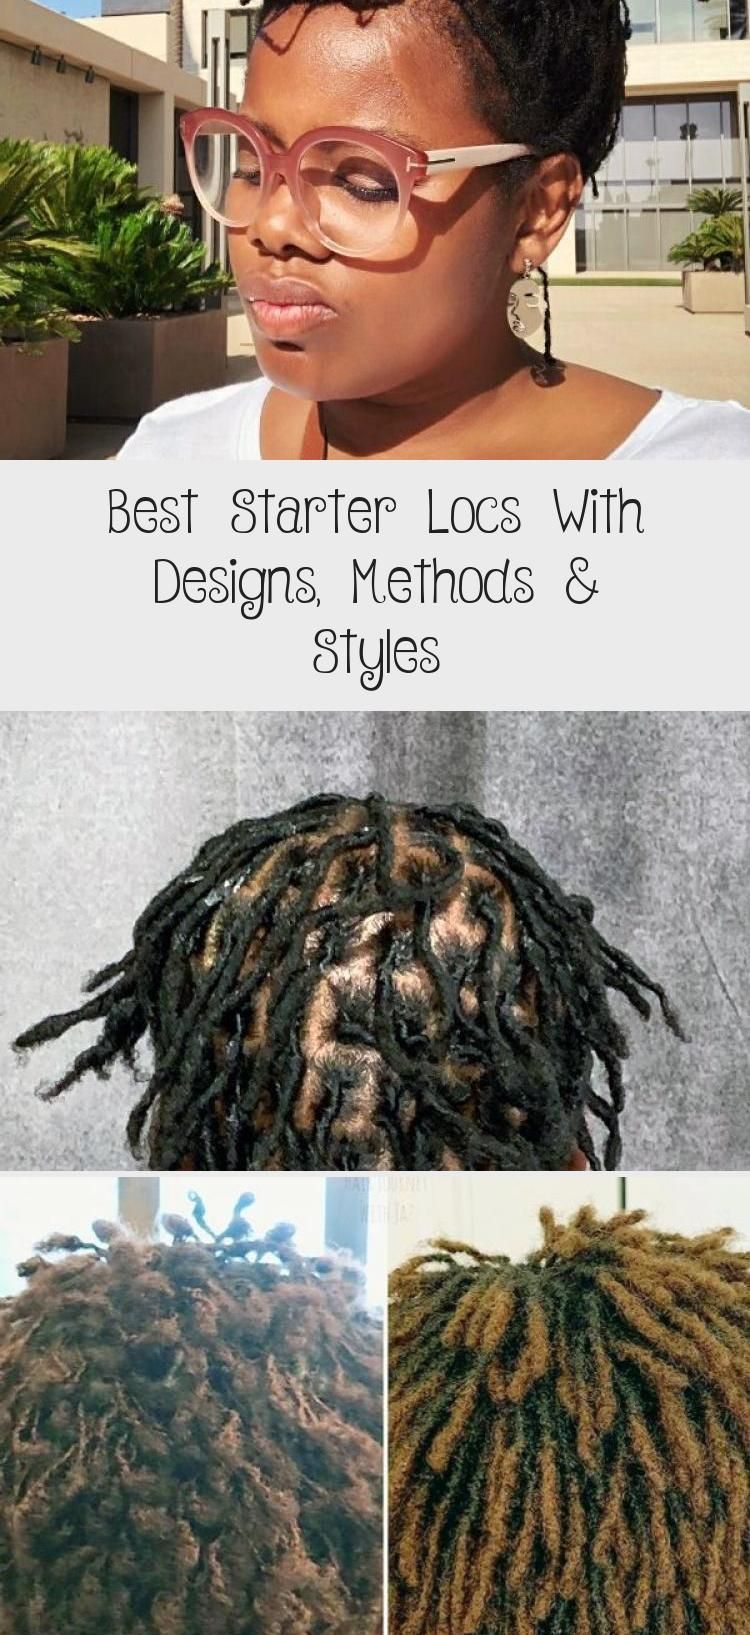 Best Starter Locs With Designs, Methods & Styles - Hair Styles